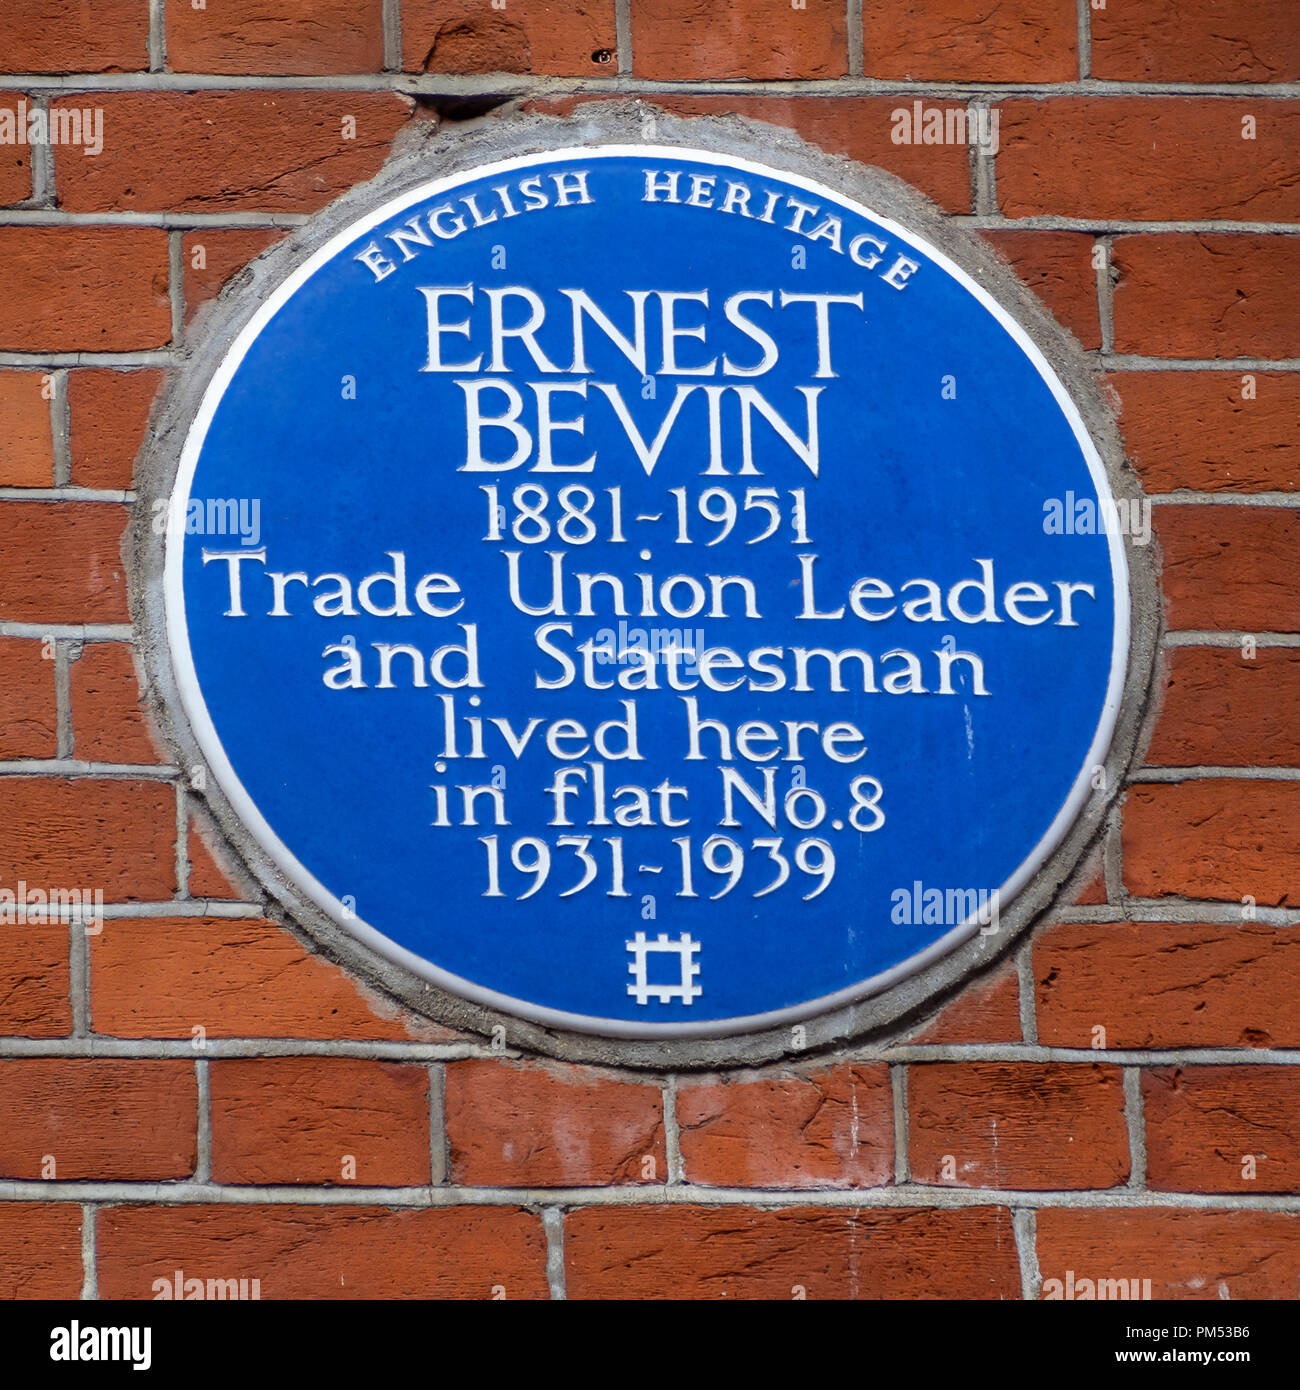 Blue Plaque Commemorating Ernest Bevin at 34 South Molton Street, London - Stock Image